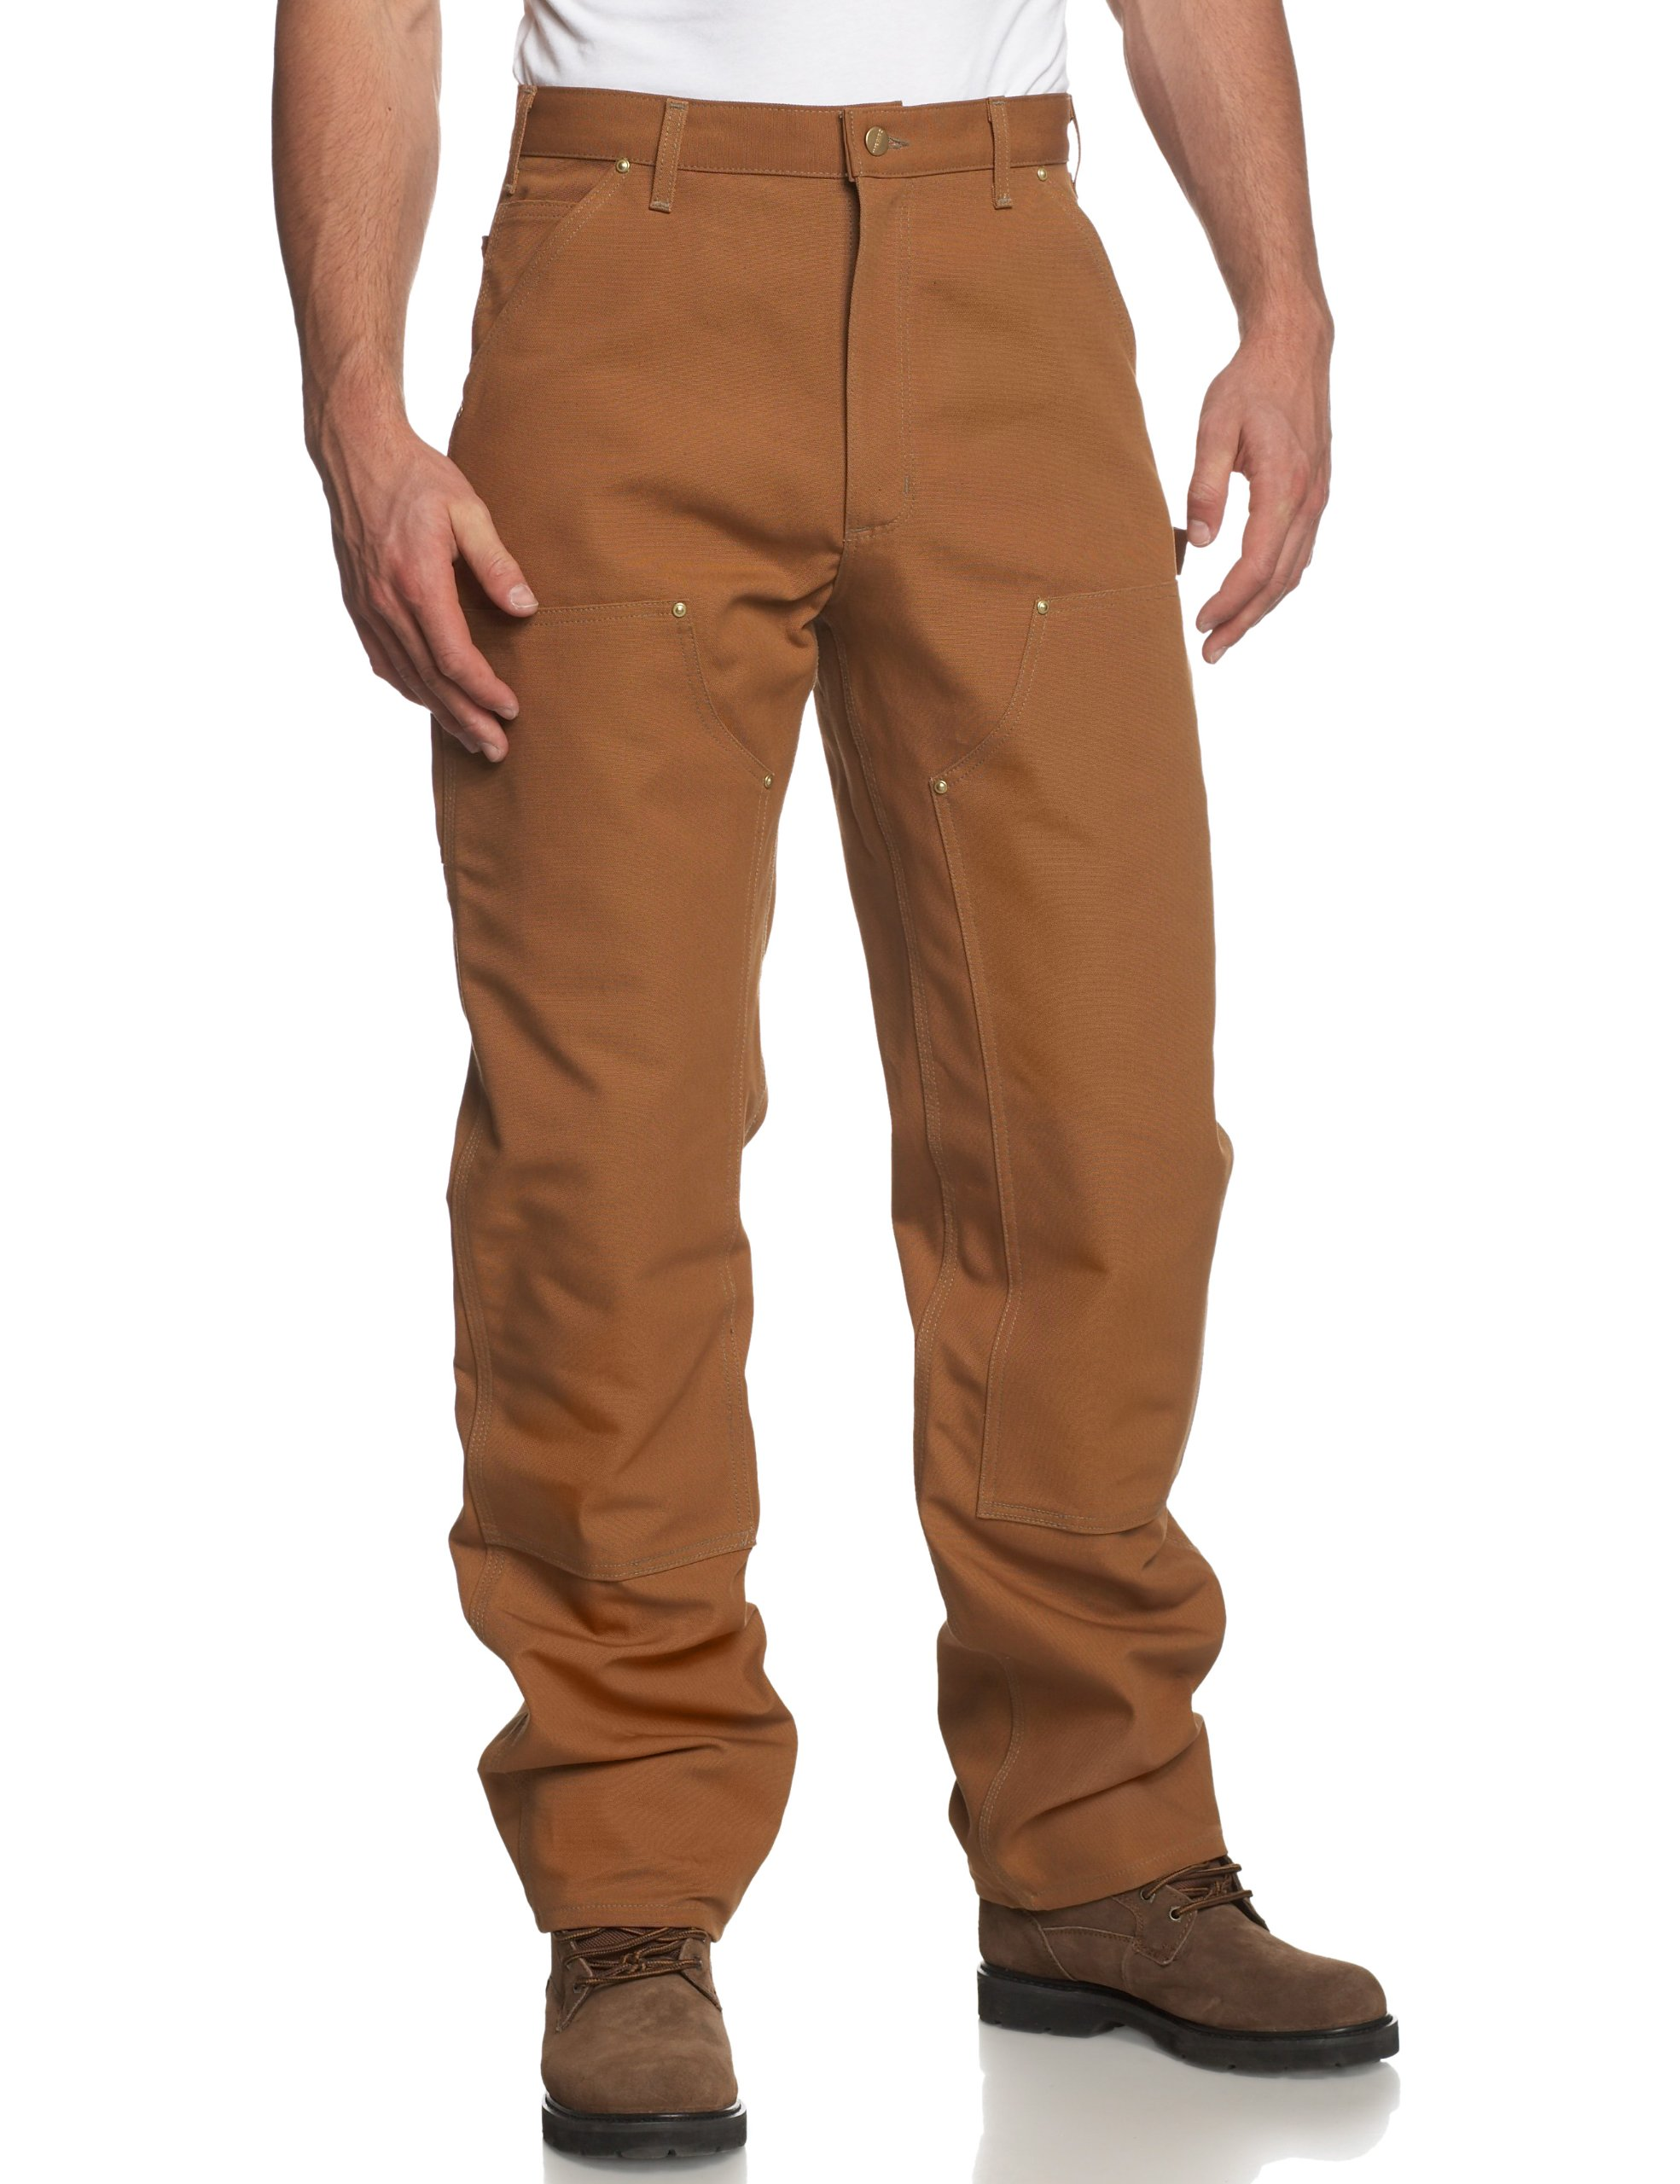 Carhartt Men's Firm Duck Double- Front Work Dungaree Pant B01,Carhartt Brown,28W x 34L